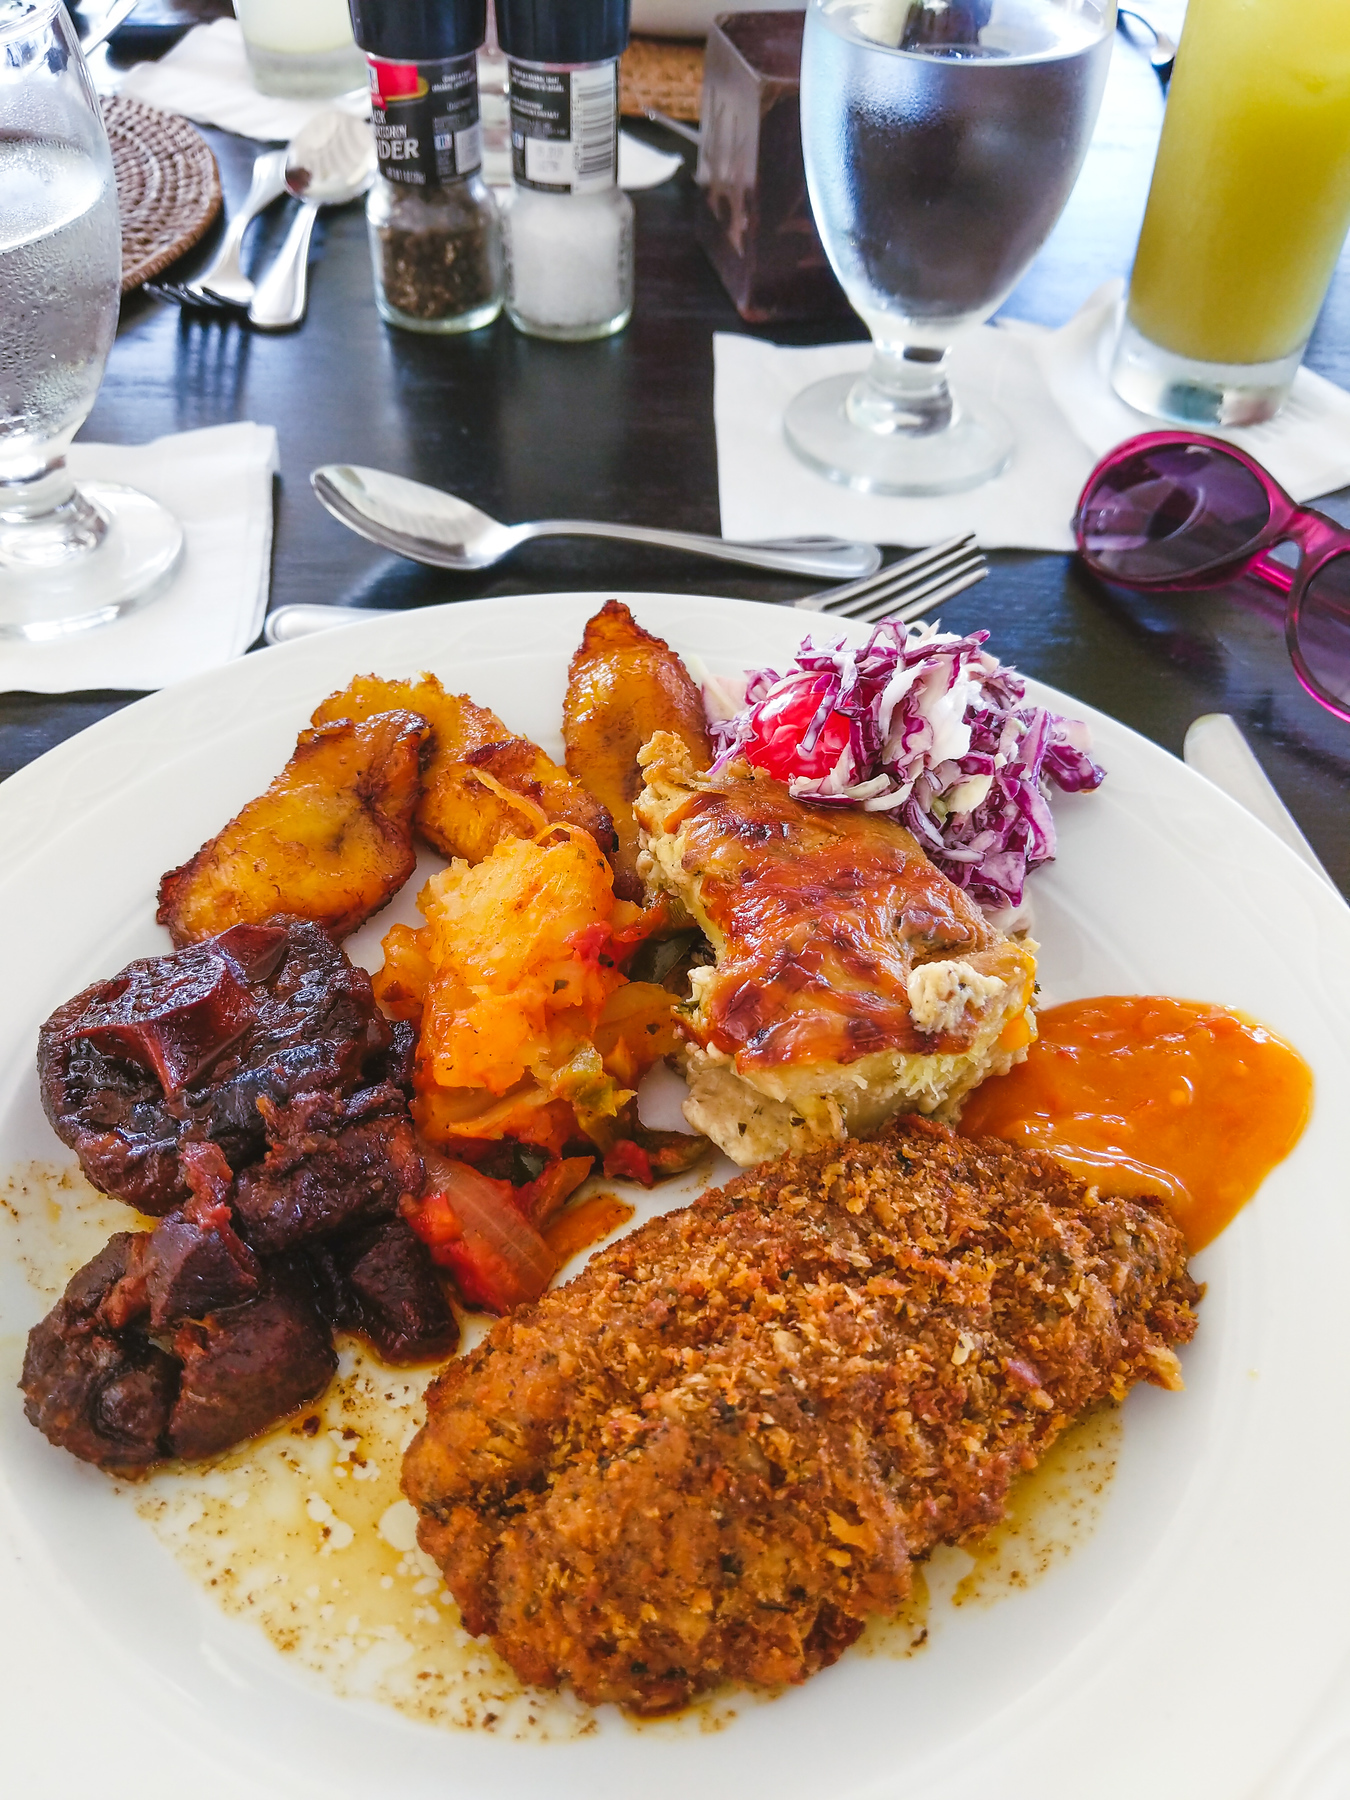 The best Barbados restaurants include Atlantis Hotel which has a killer Sunday brunch with live music.